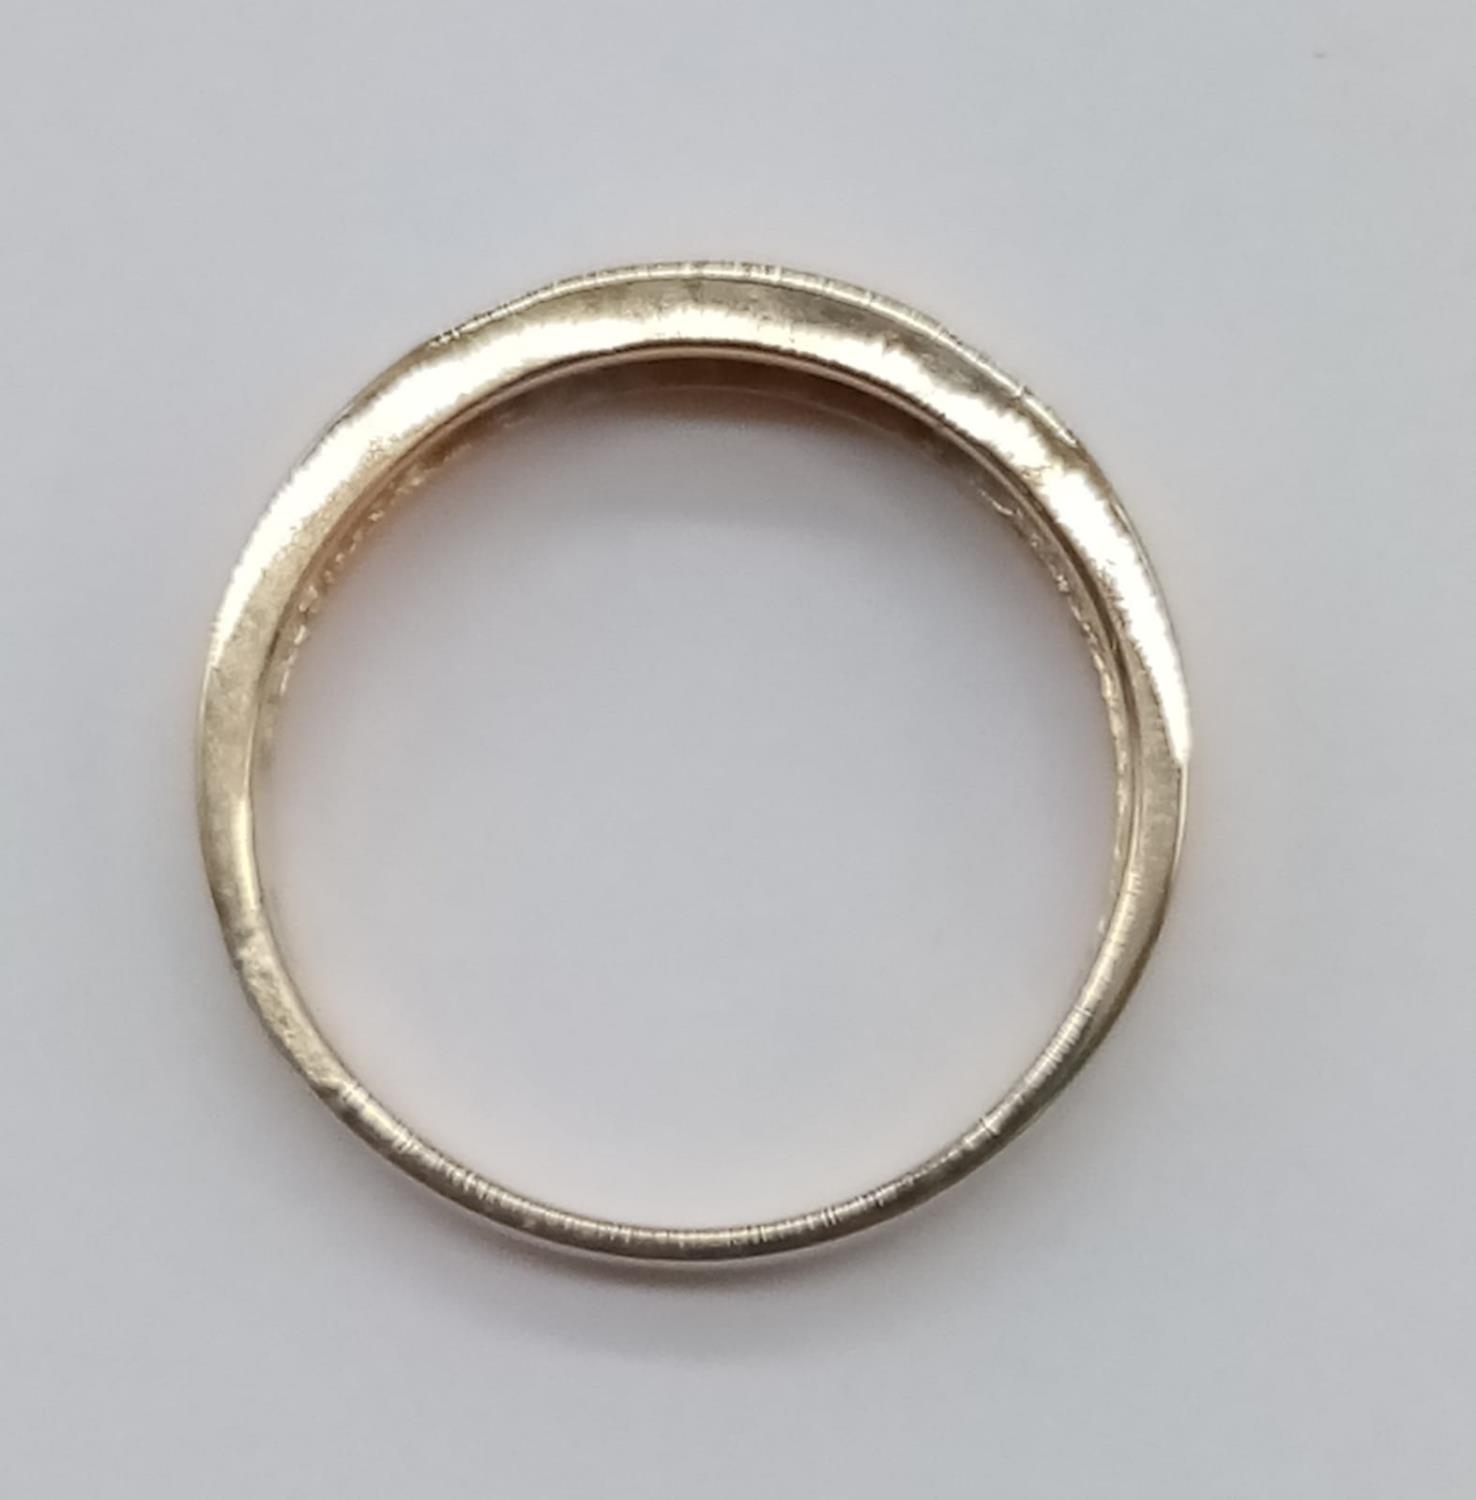 14CT Yellow gold DIAMOND SET BAND RING, weight 3.9G and size P - Image 3 of 6